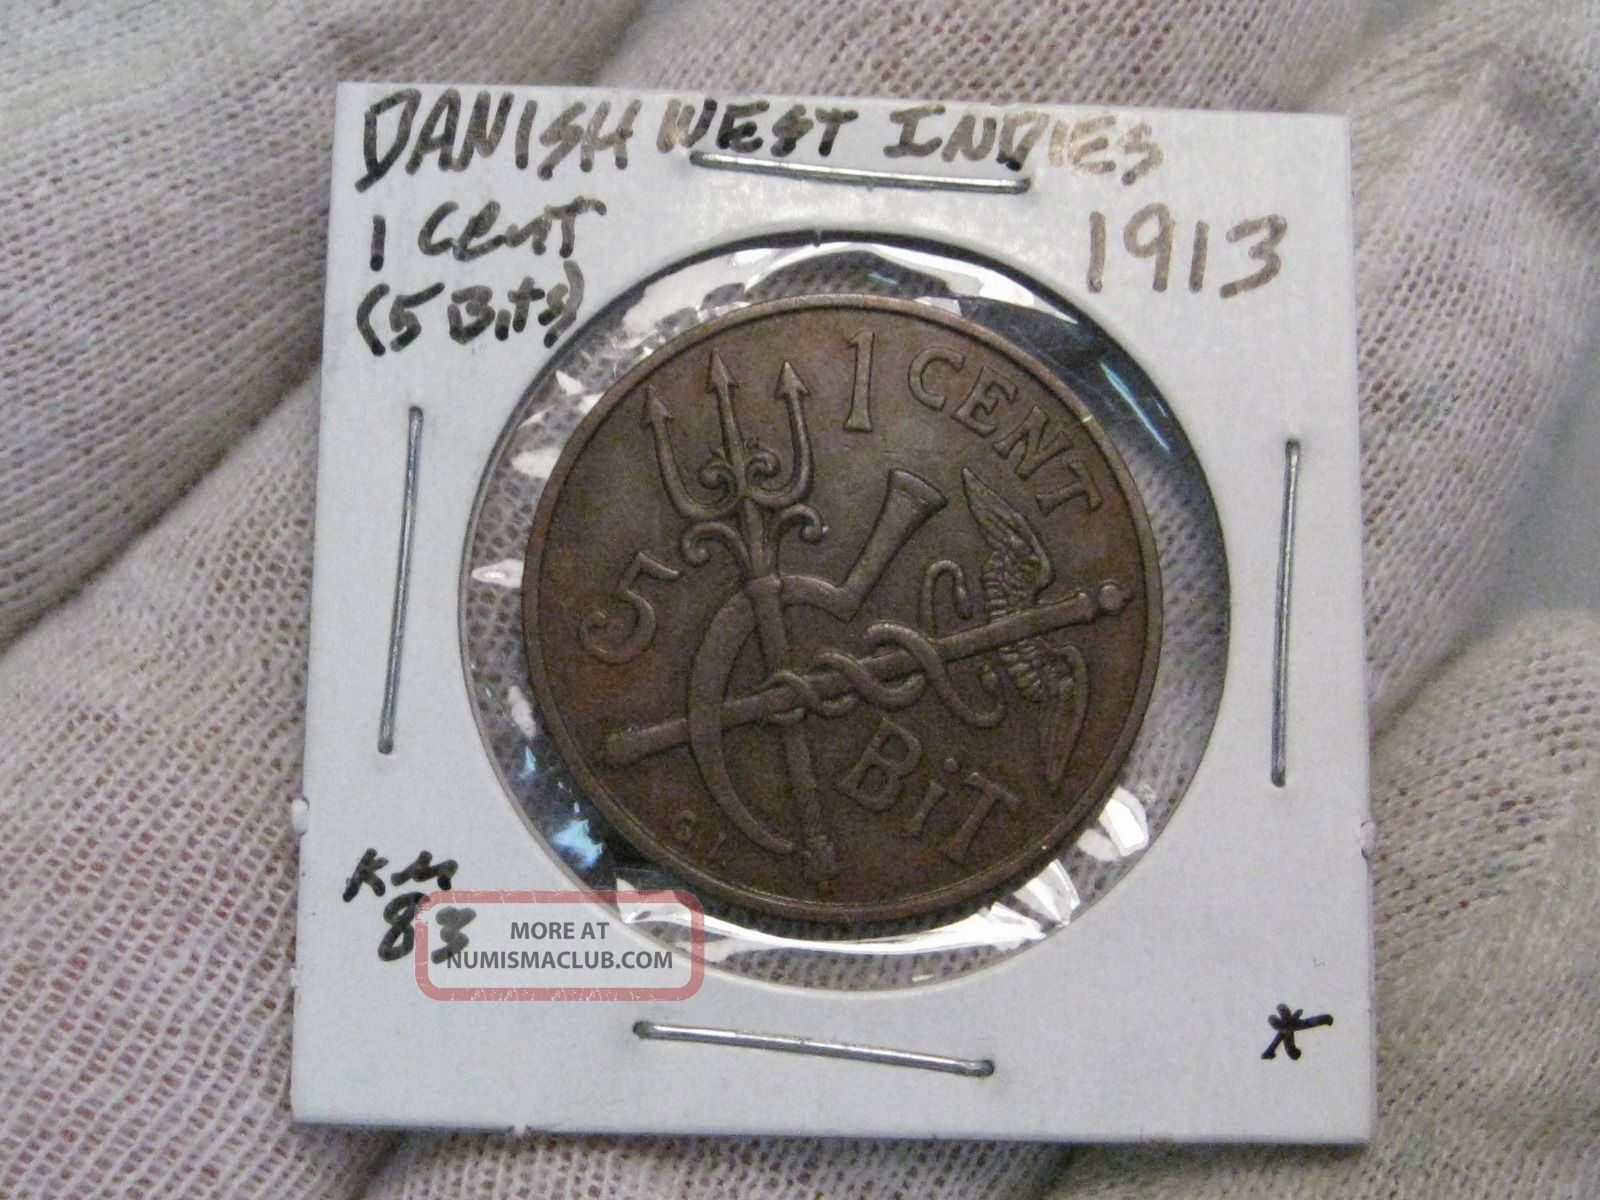 Rare Danish West Indies 1913 Better Grade 1 Cent Old Caribbean Coin Vf Xf